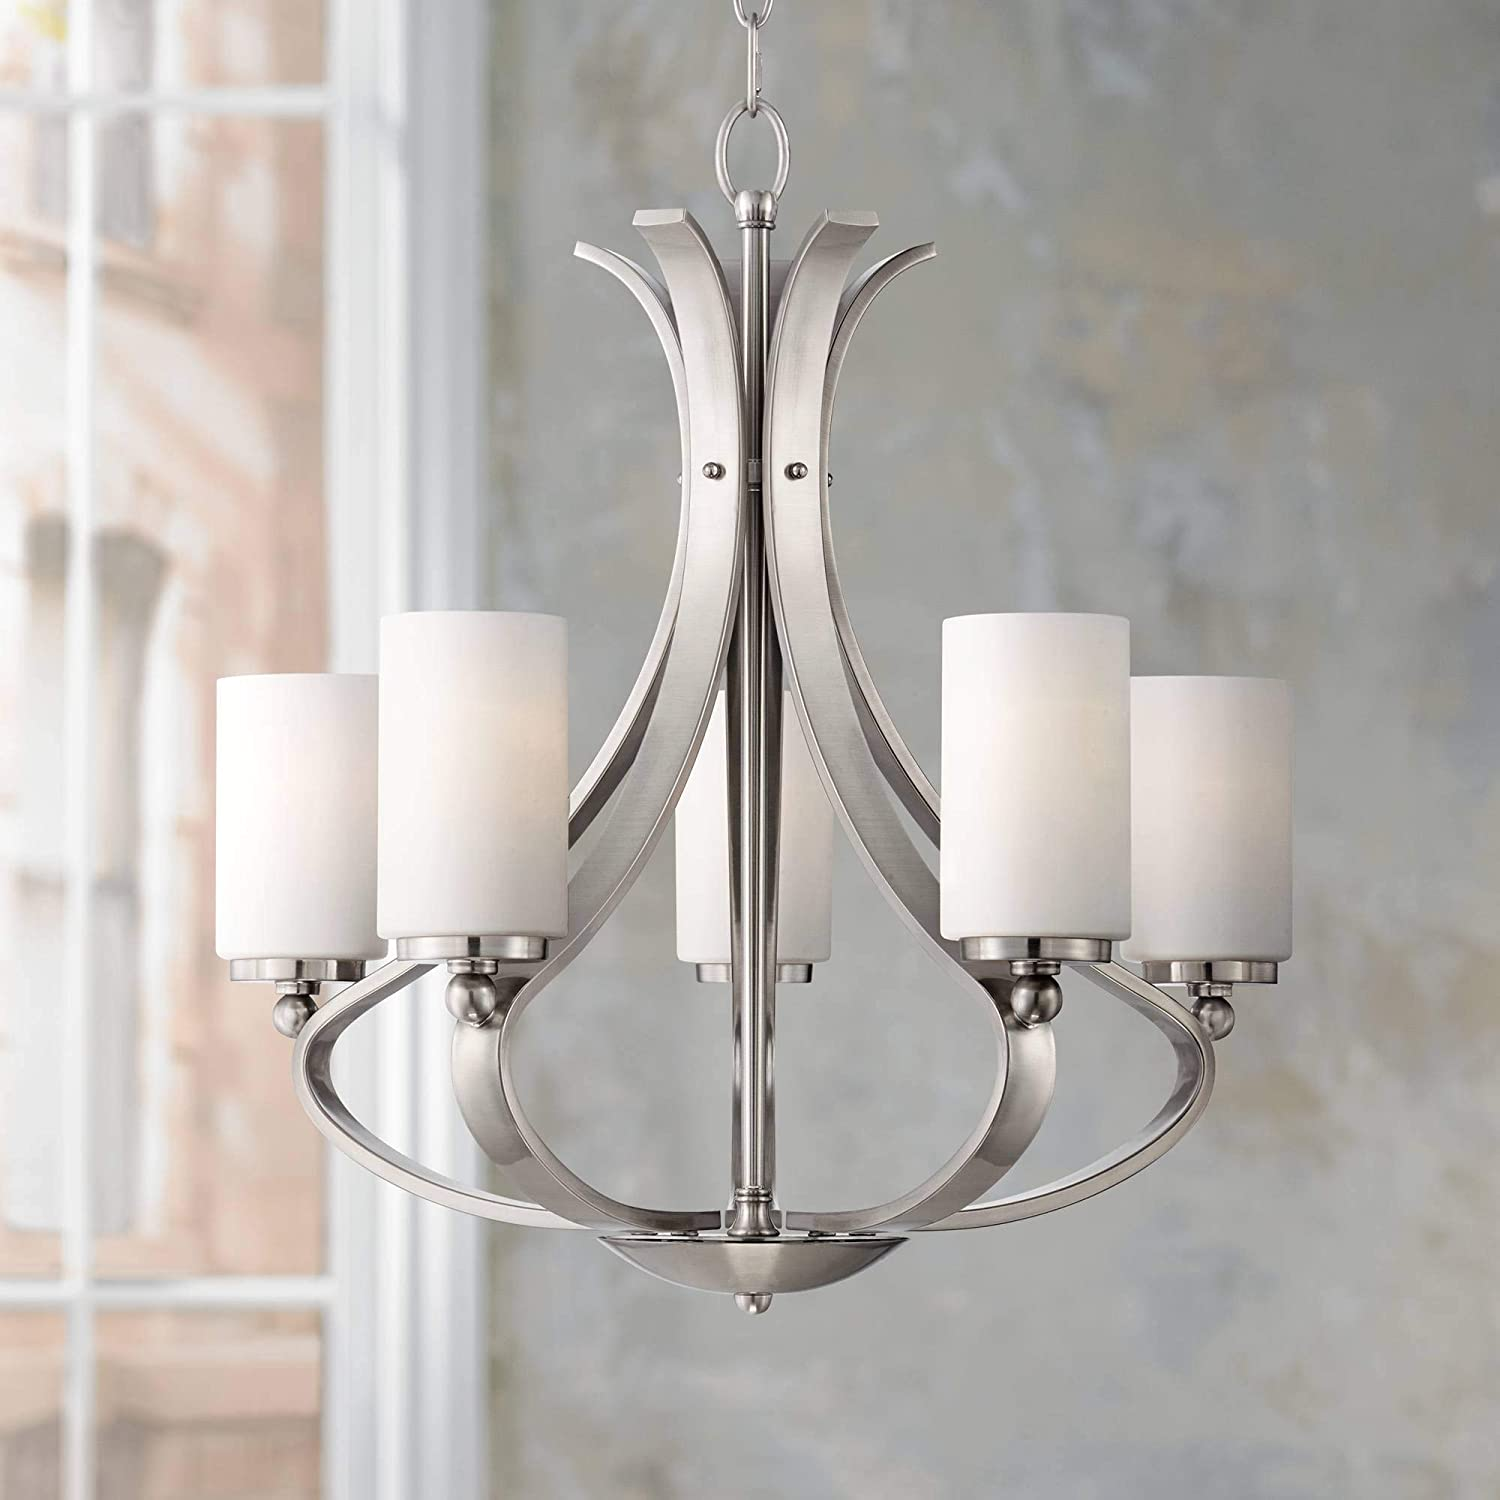 Possini Euro Kadence 5-Light 23 1 4 W Nickel Chandelier – Possini Euro Design